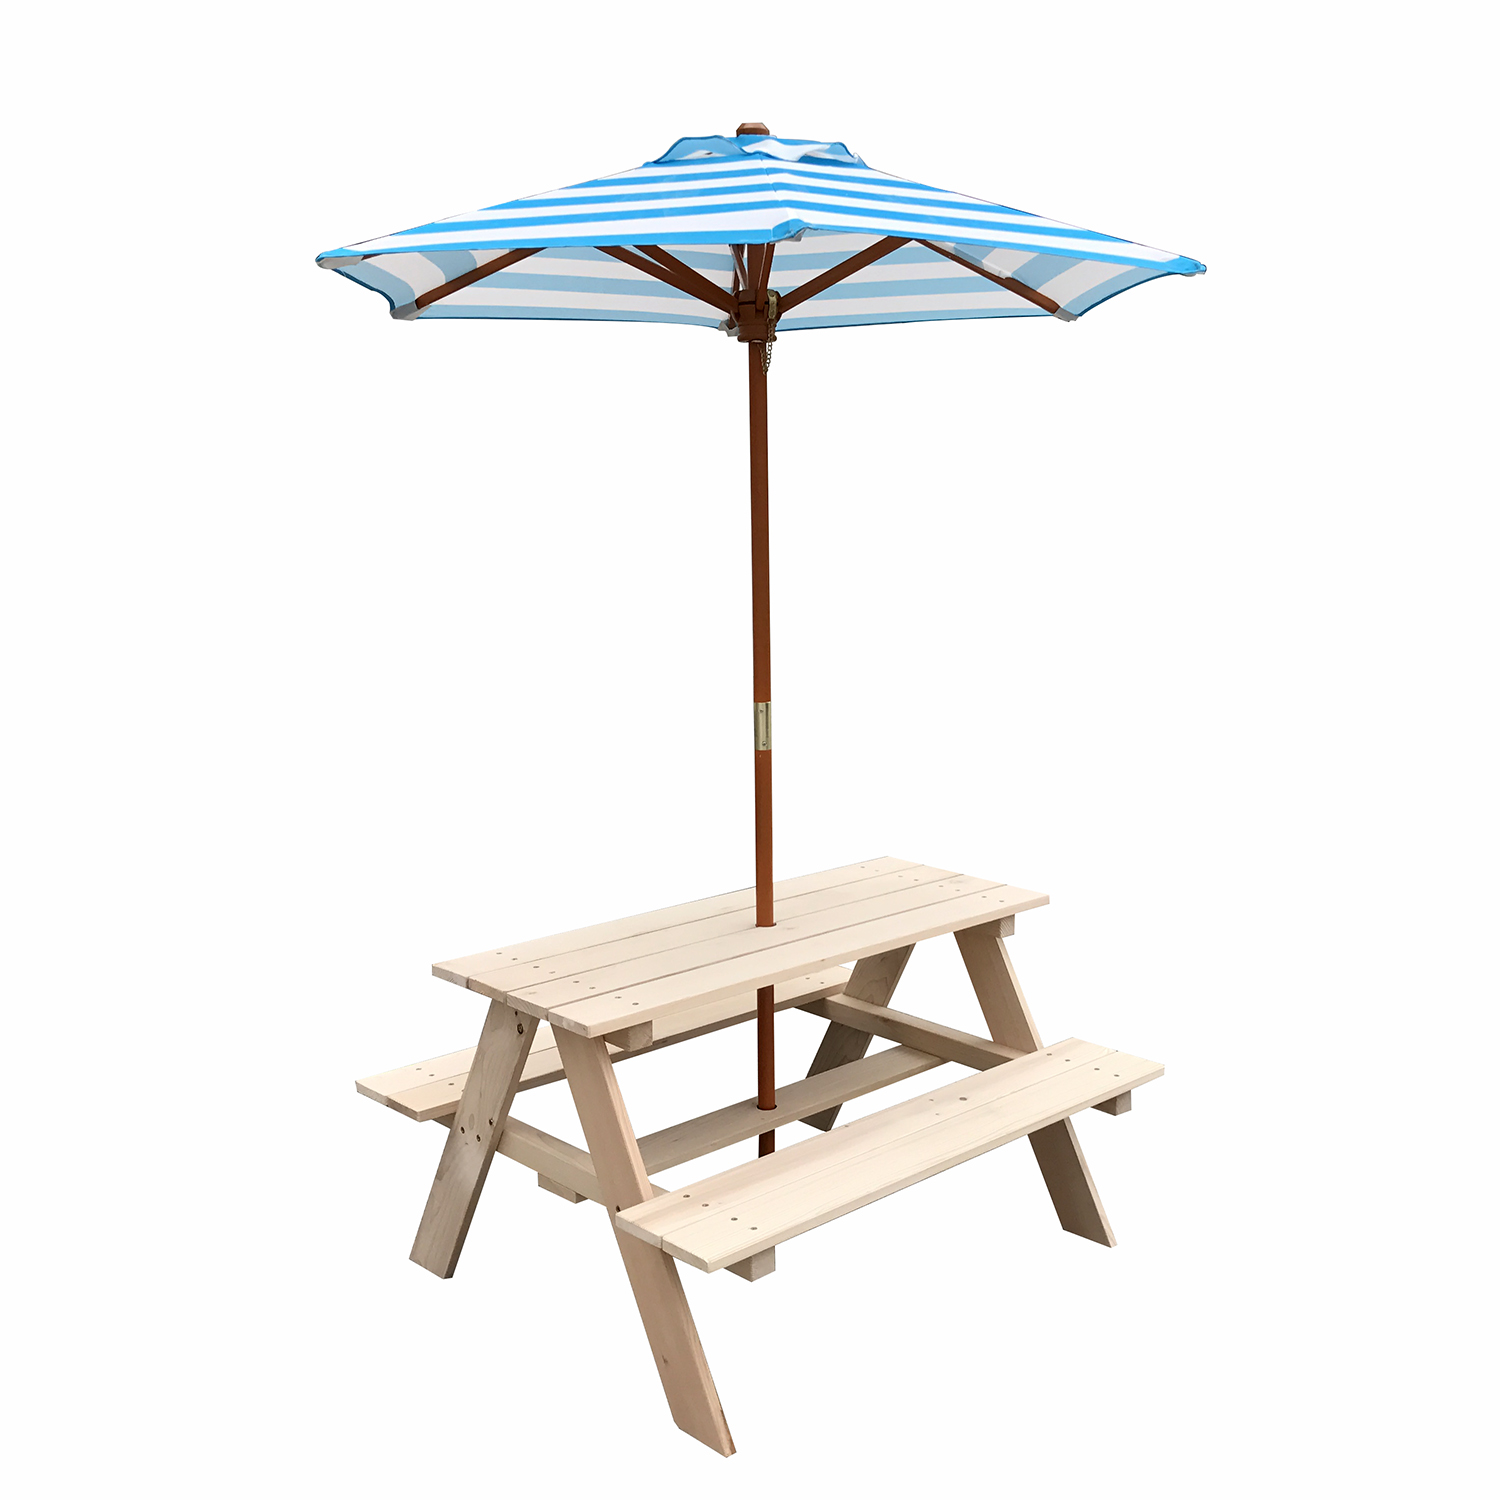 Outdoor Patio Wooden Kids Child Picnic Table Bench Chair W/ Umbrella Beach  Gardern